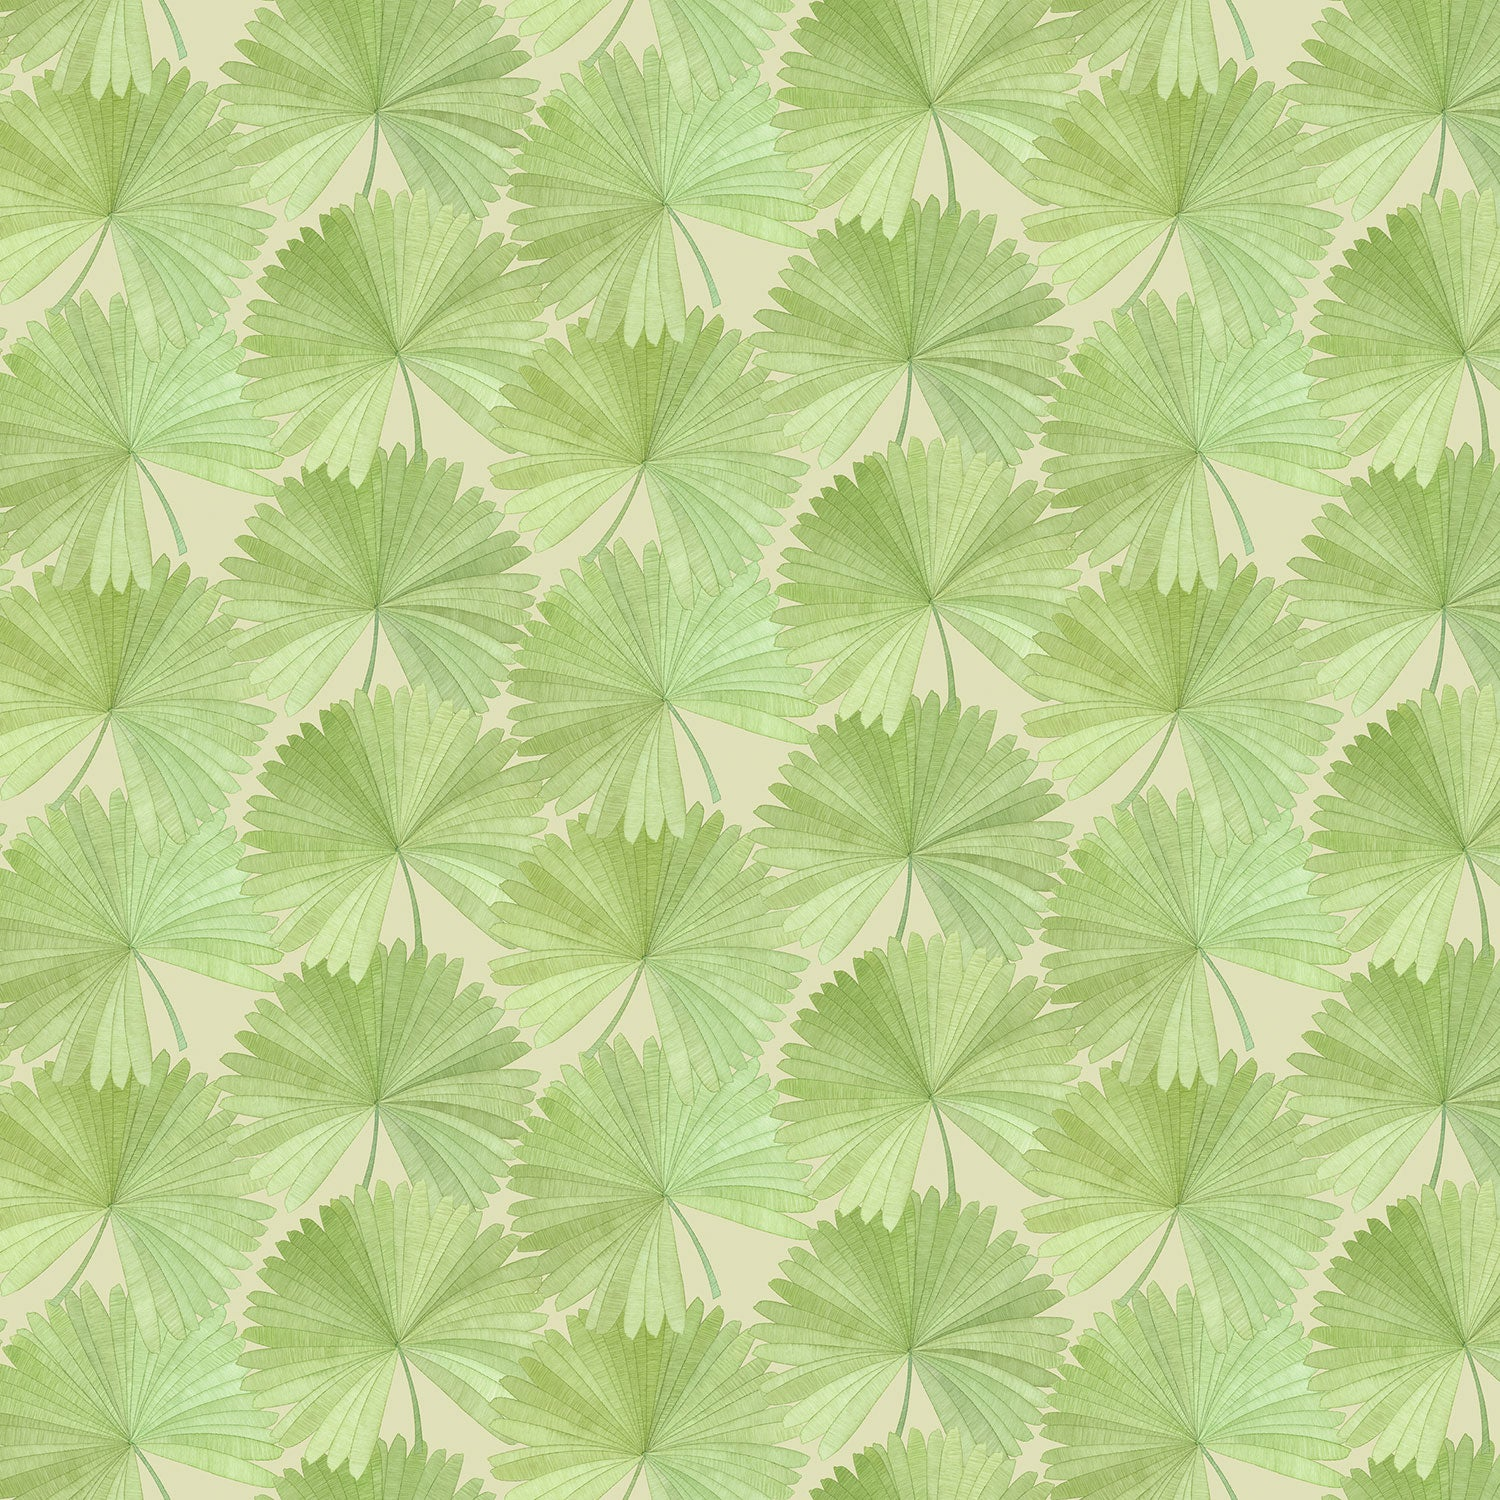 Luxury wallpaper featuring a tropical palm design in green colours